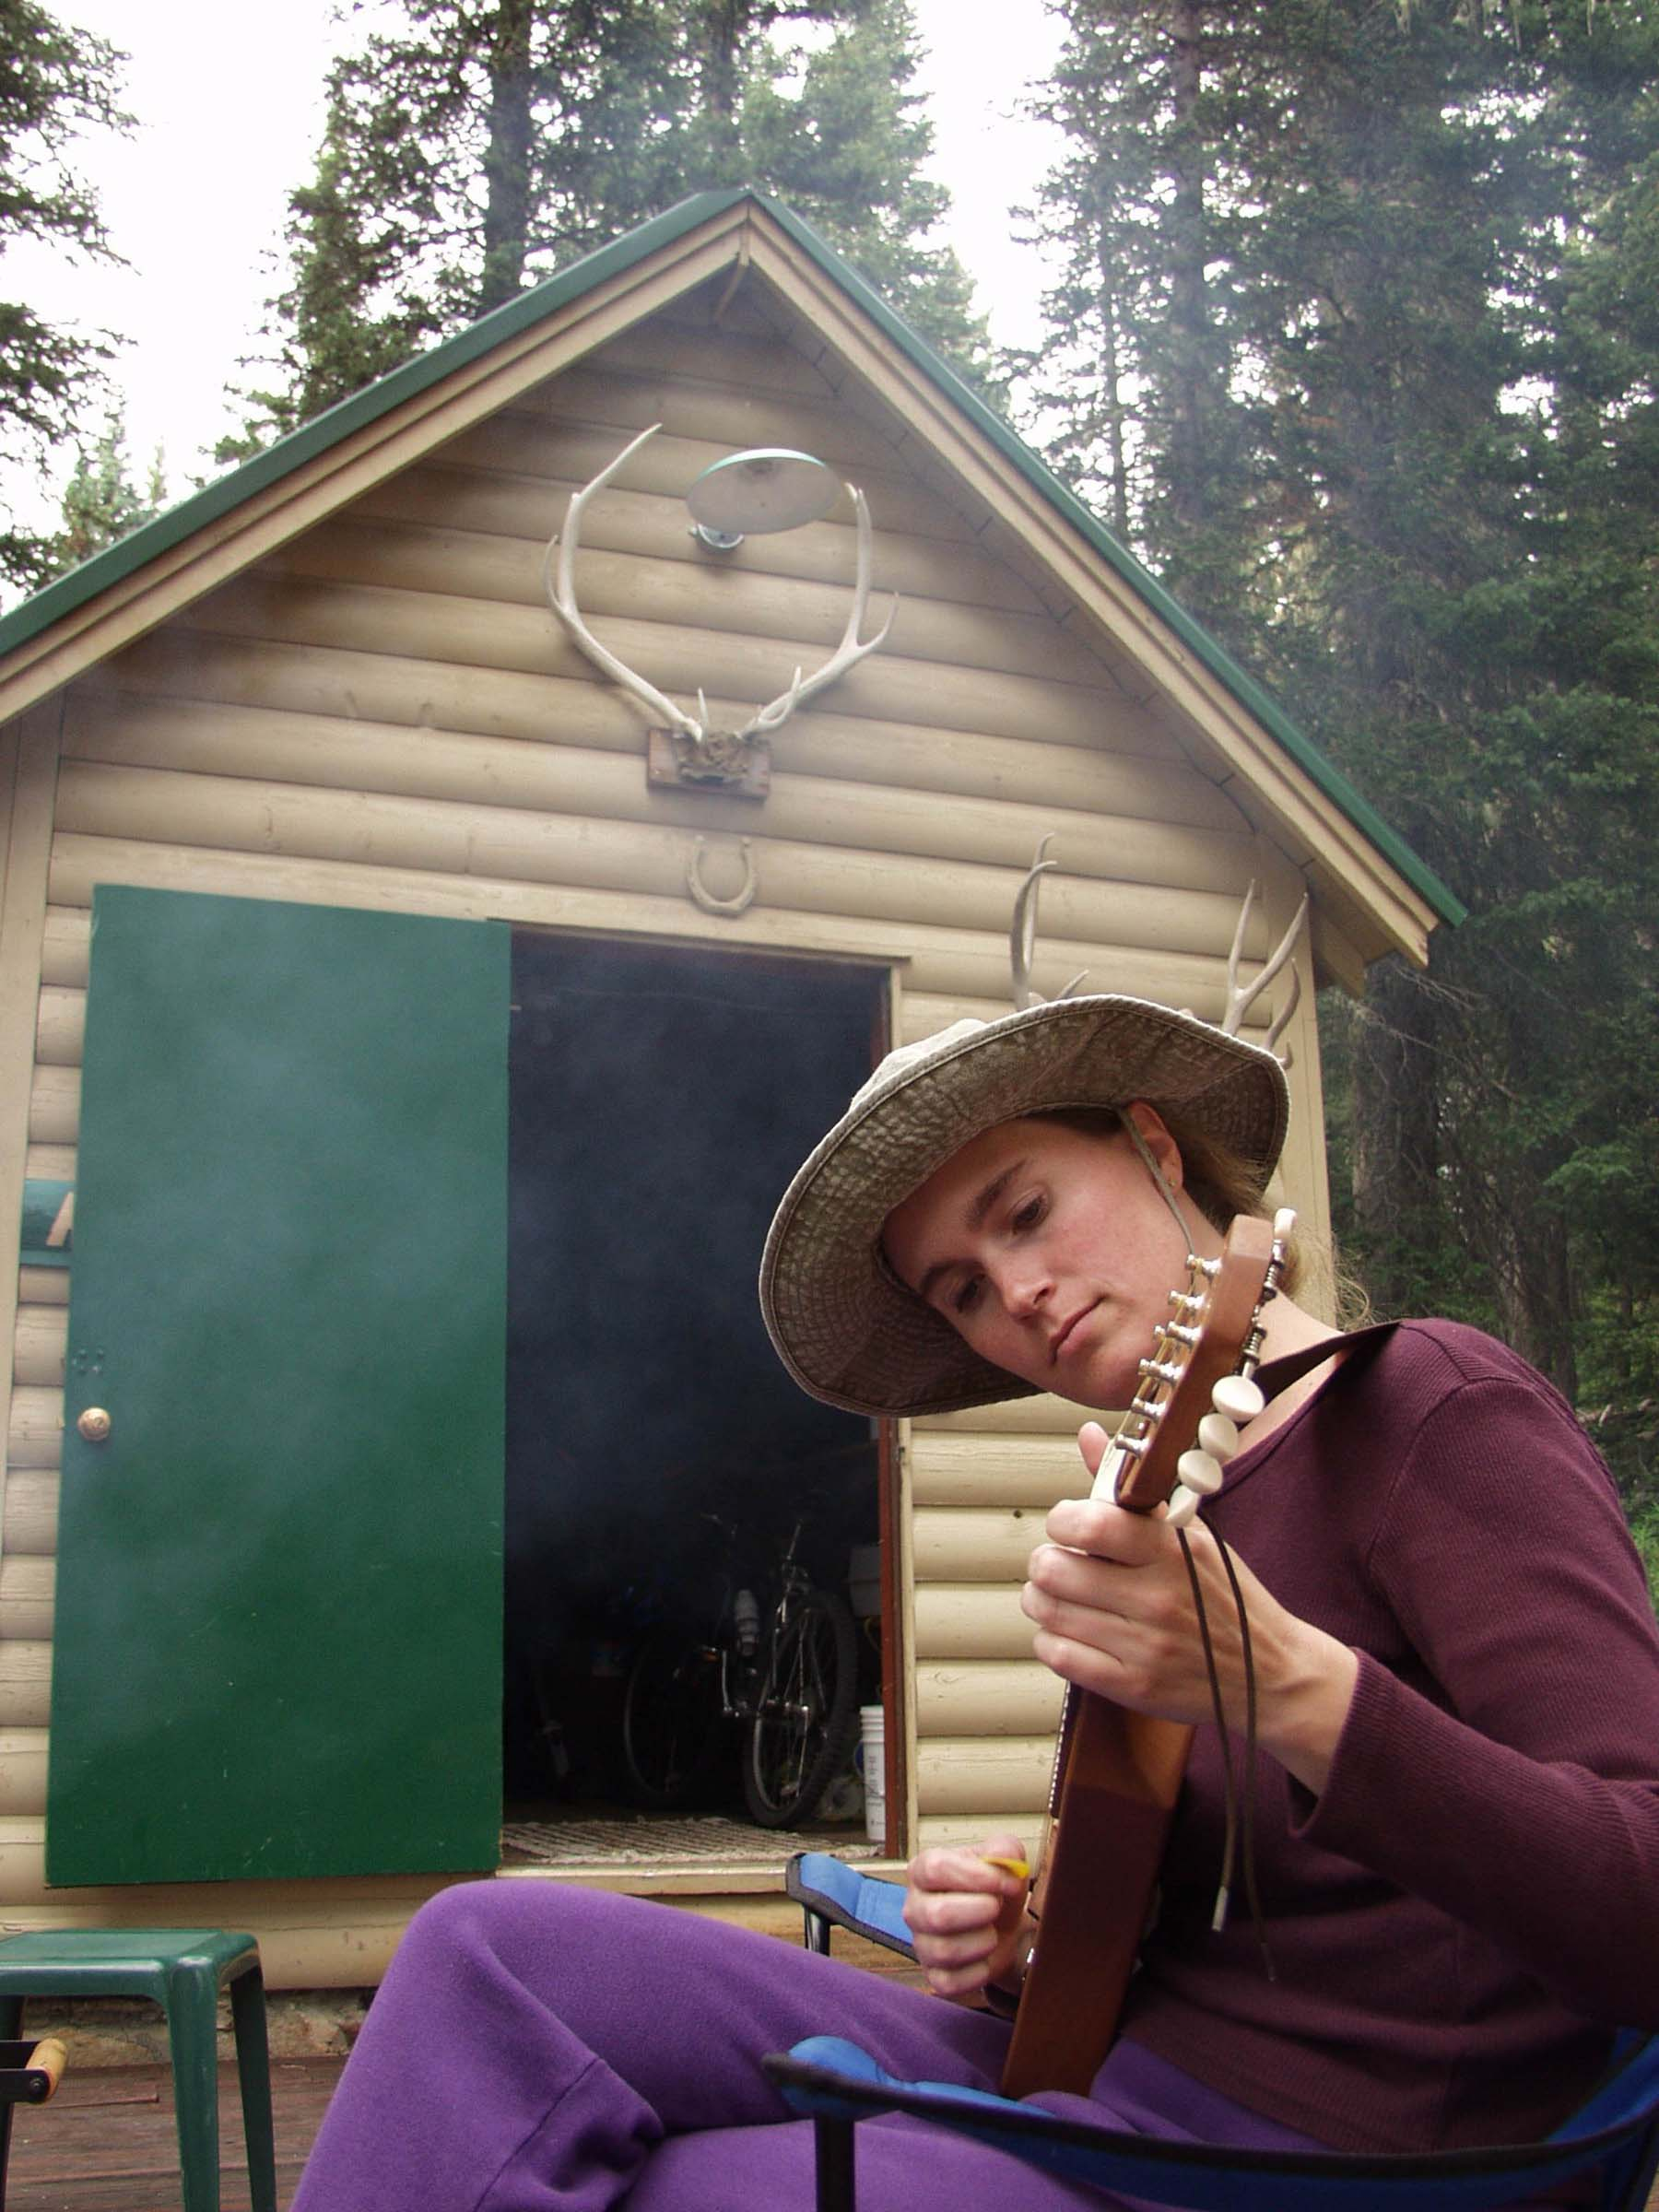 Jammin' Shana on Mandolin at Mom's Cabin (August 2001)